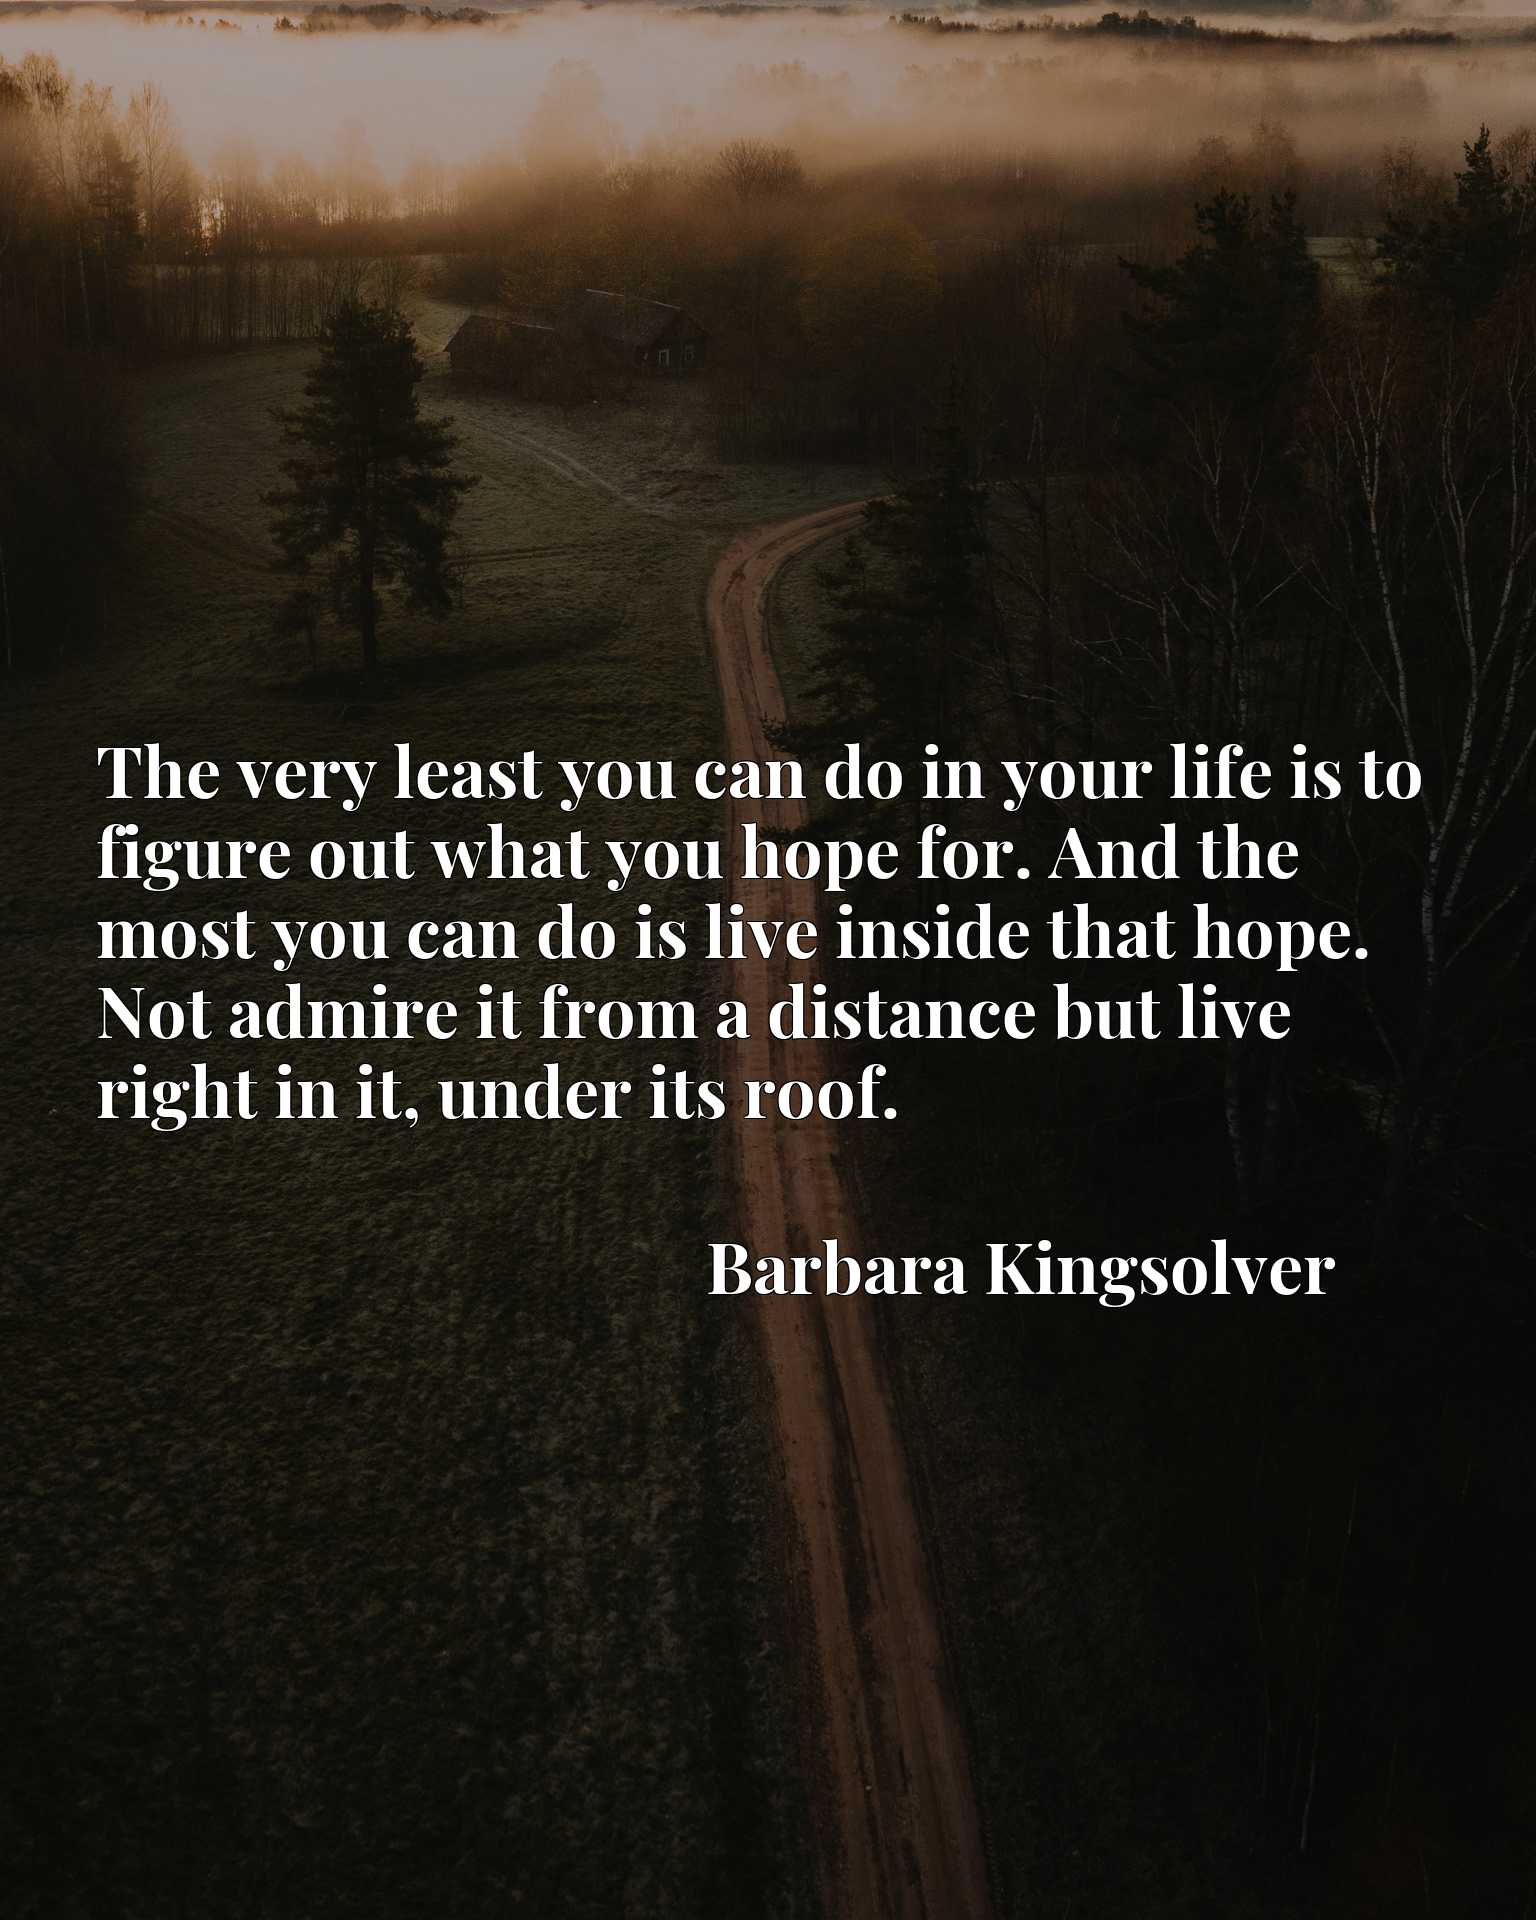 The very least you can do in your life is to figure out what you hope for. And the most you can do is live inside that hope. Not admire it from a distance but live right in it, under its roof.